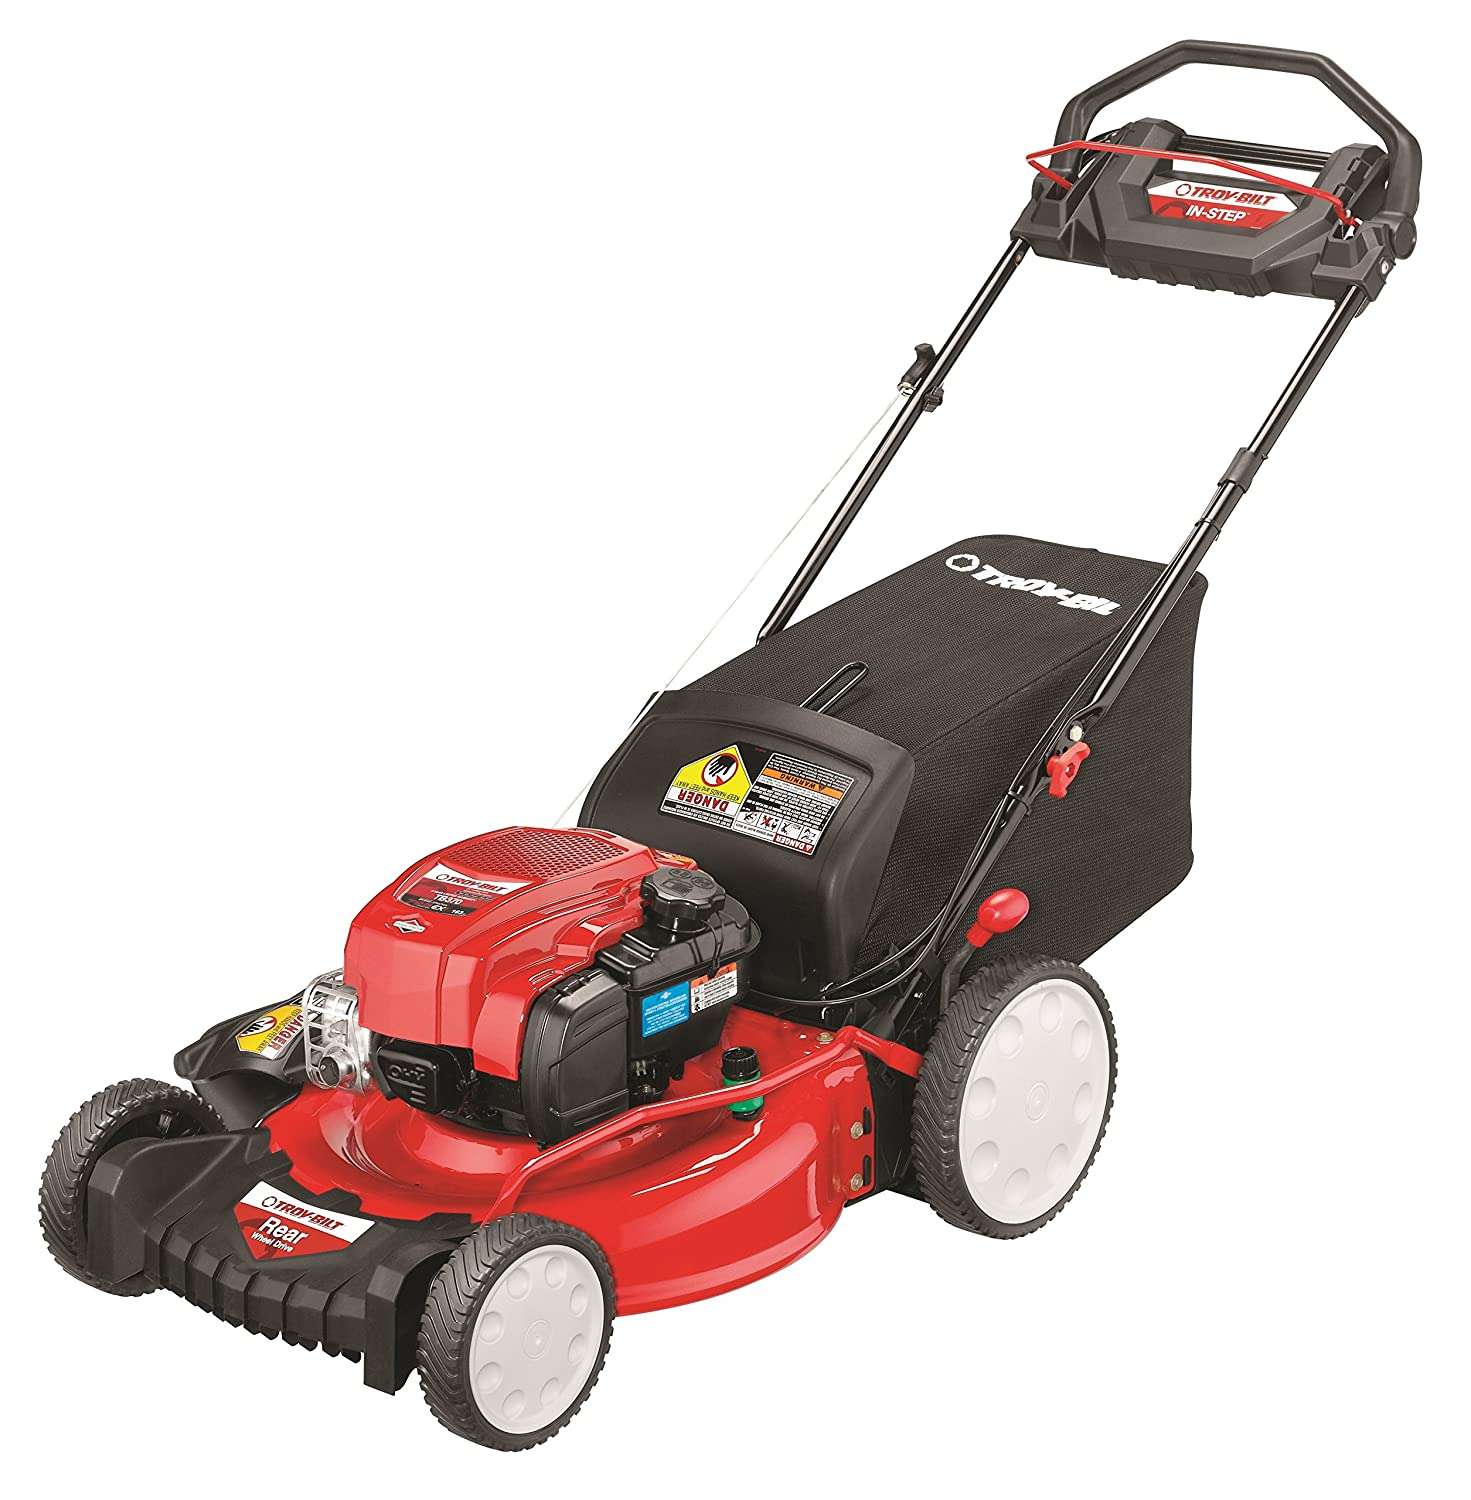 Amazon.com : Troy-Bilt TB370 163cc 21-inch In Step RWD Self-Propelled Lawn  Mower : Garden & Outdoor